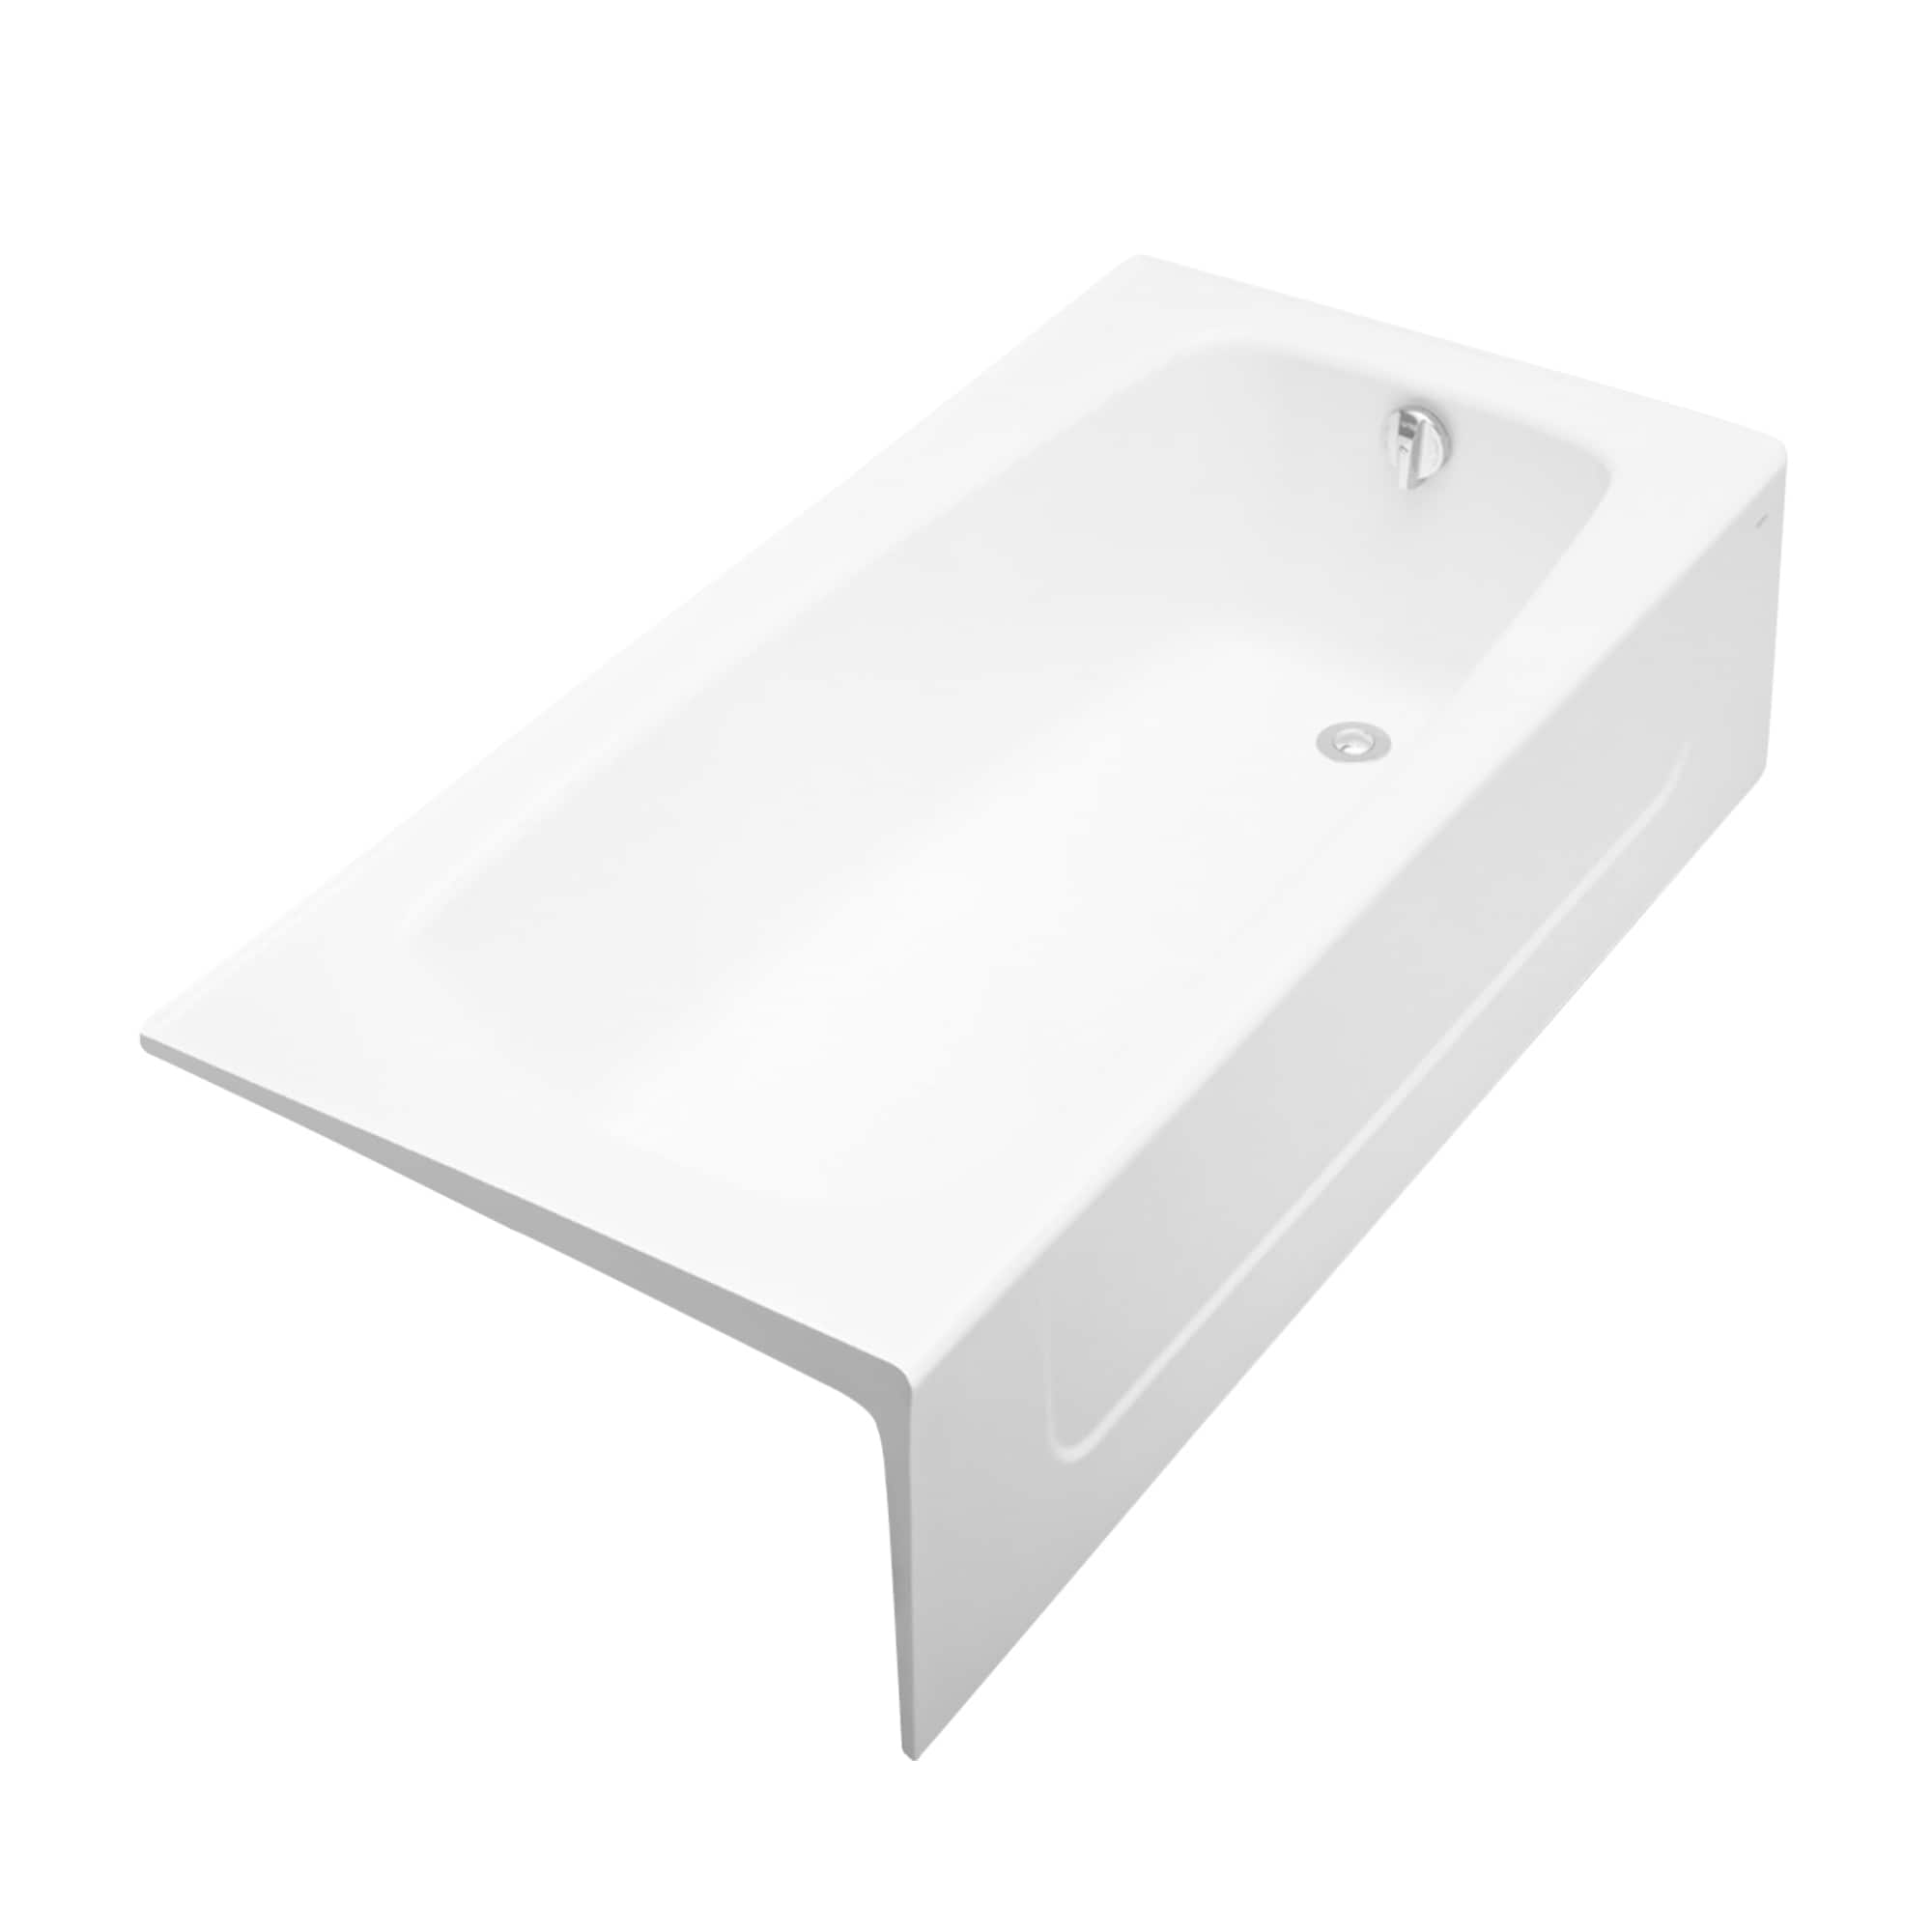 Picture of: Shop Toto Right Hand Cast Iron Bathtub 66 X 32 X 16 5 16 Cotton White Fby1715rp 01 Overstock 10508307